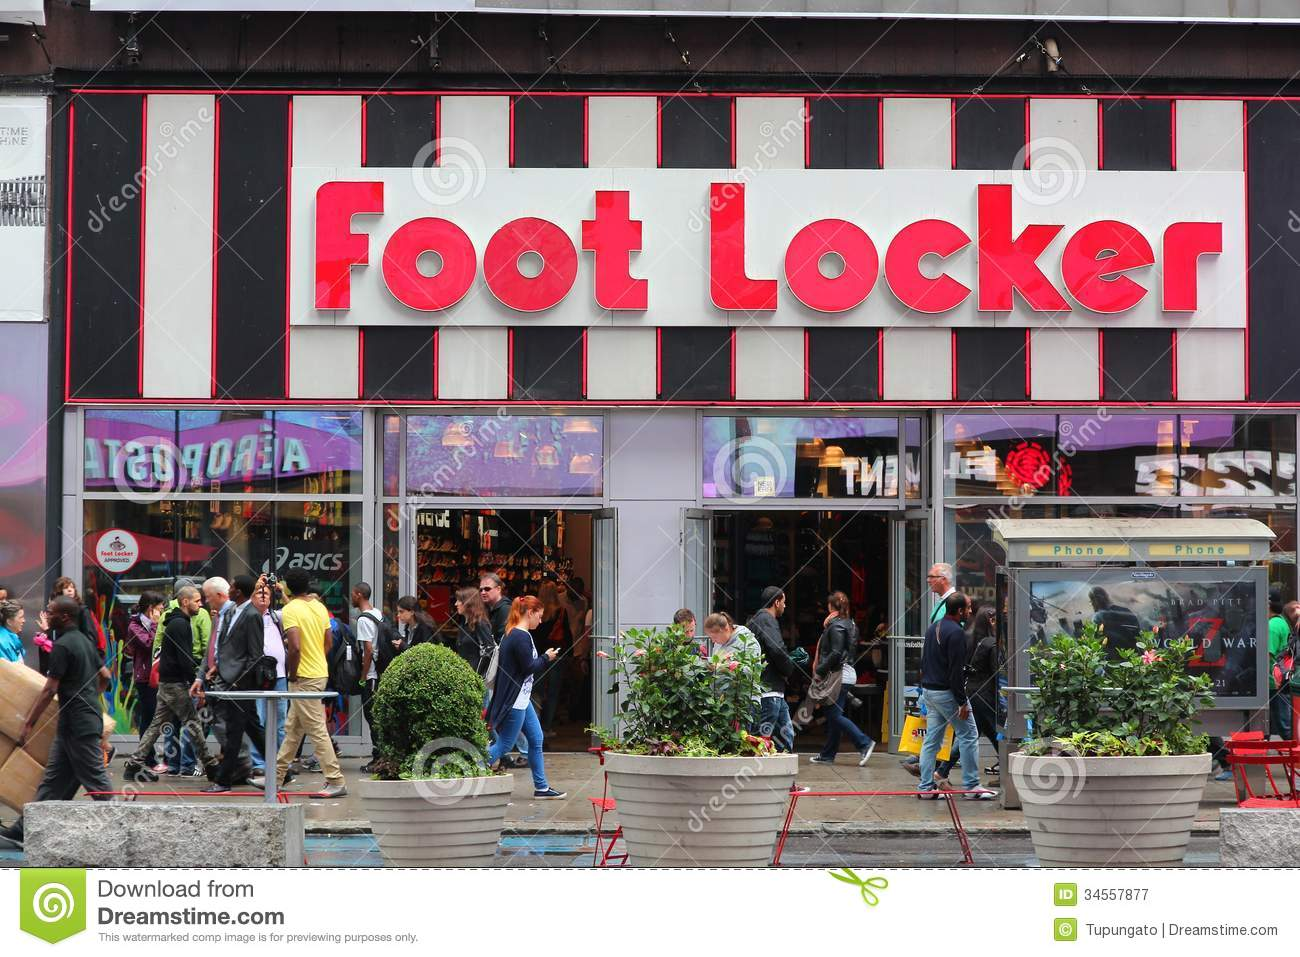 Company Description (as filed with the SEC) Foot Locker, Inc., incorporated under the laws of the State of New York in , is a leading global retailer of athletically inspired shoes and apparel.